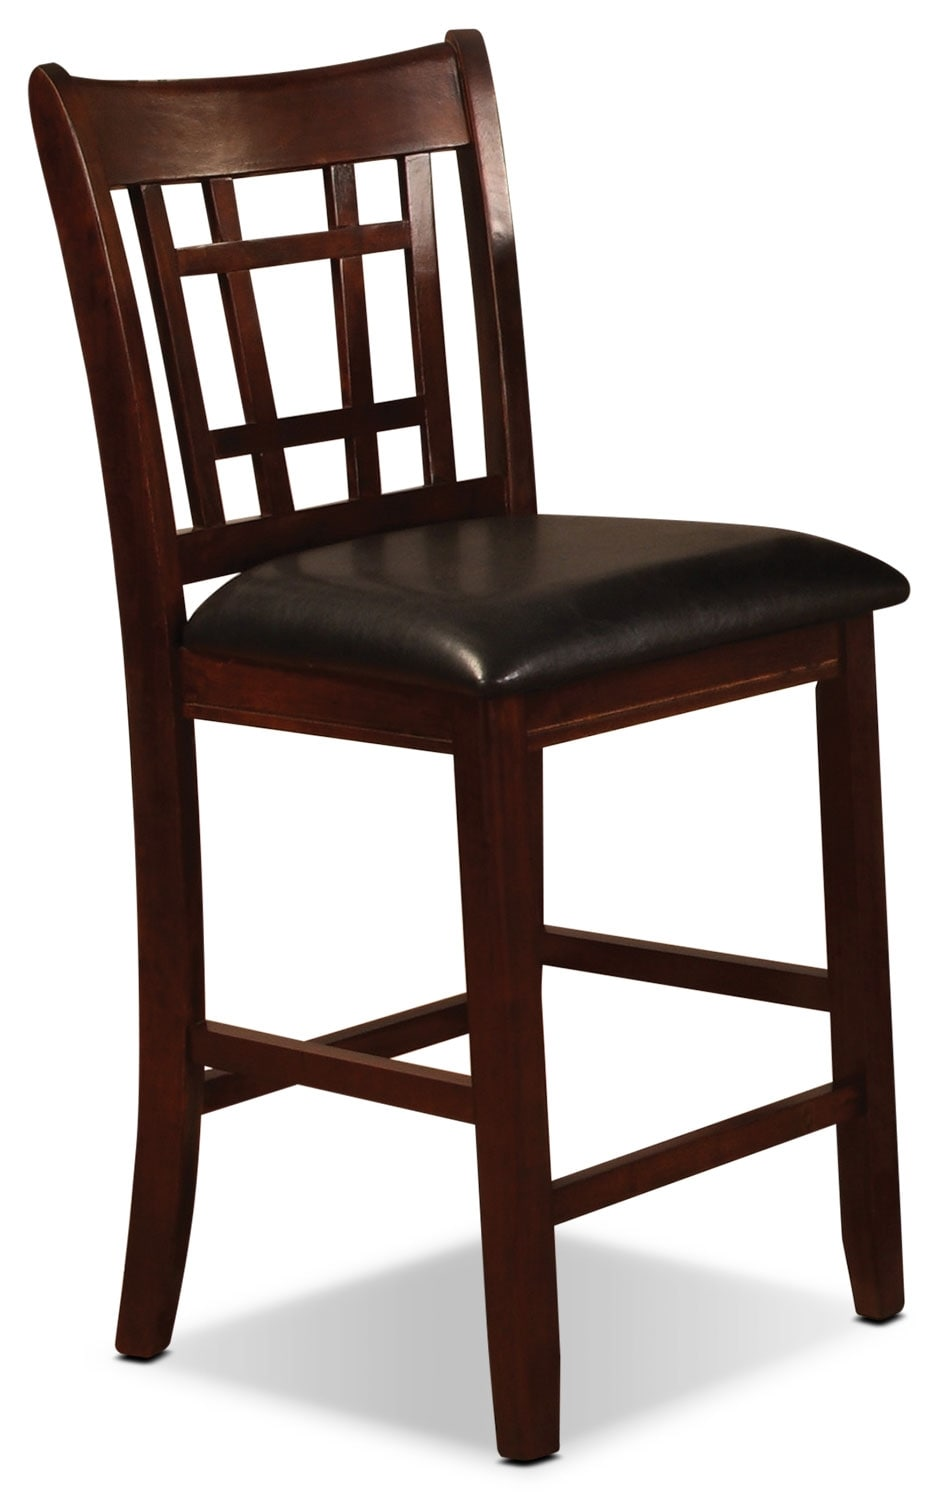 Dining Room Furniture - Dalton Chocolate Counter-Height Chair